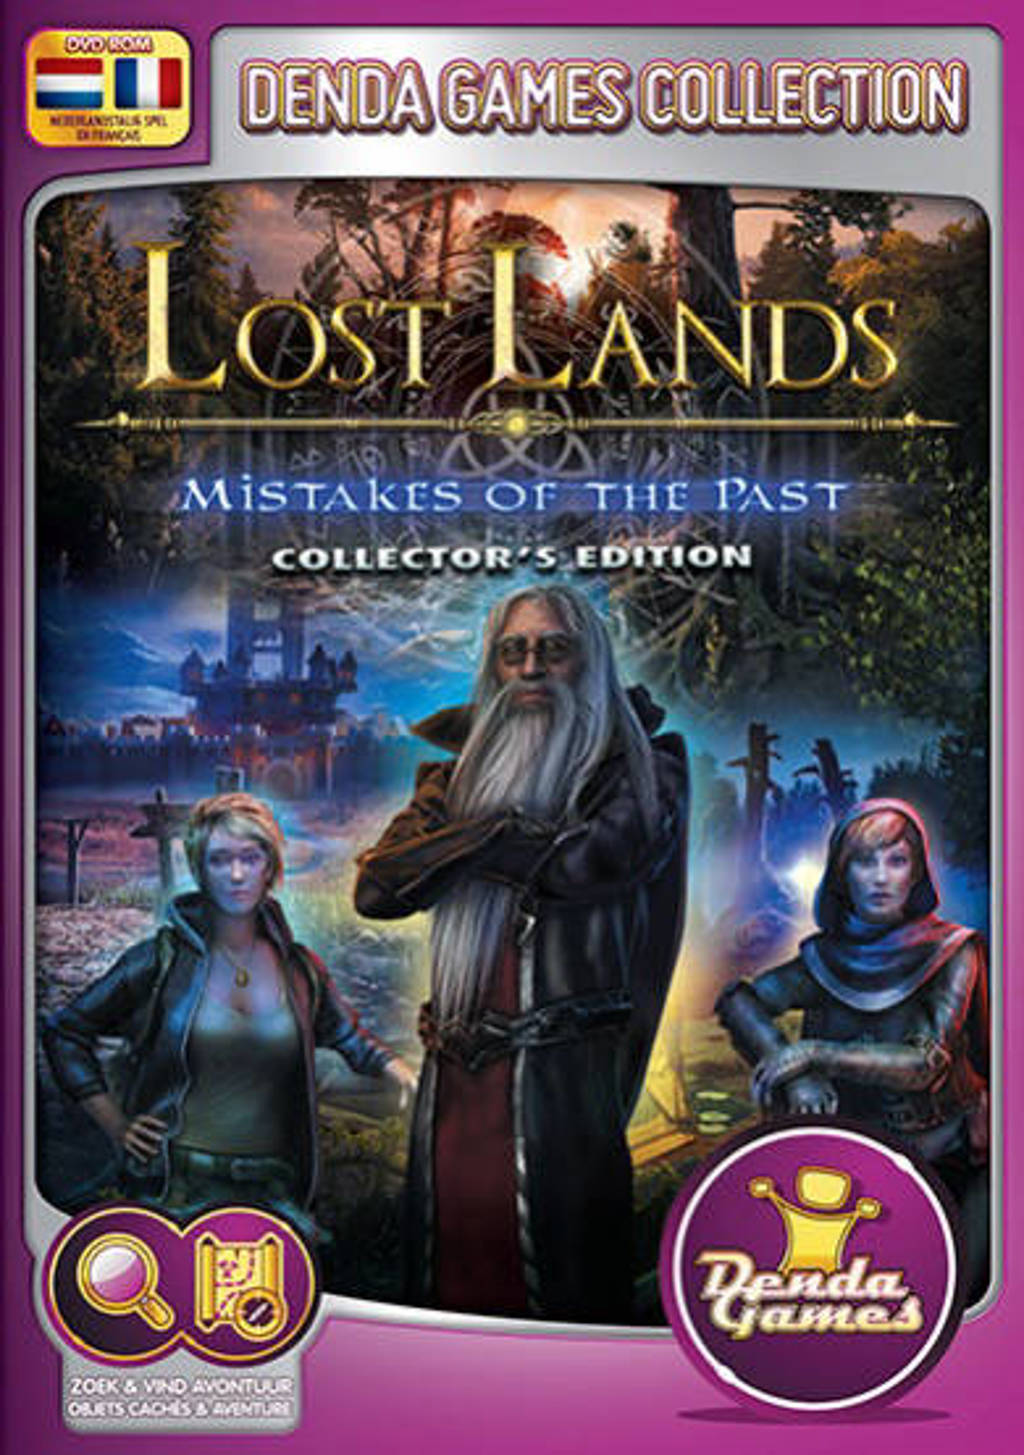 Lost lands - Mistakes of the past (Collectors edition) (PC)